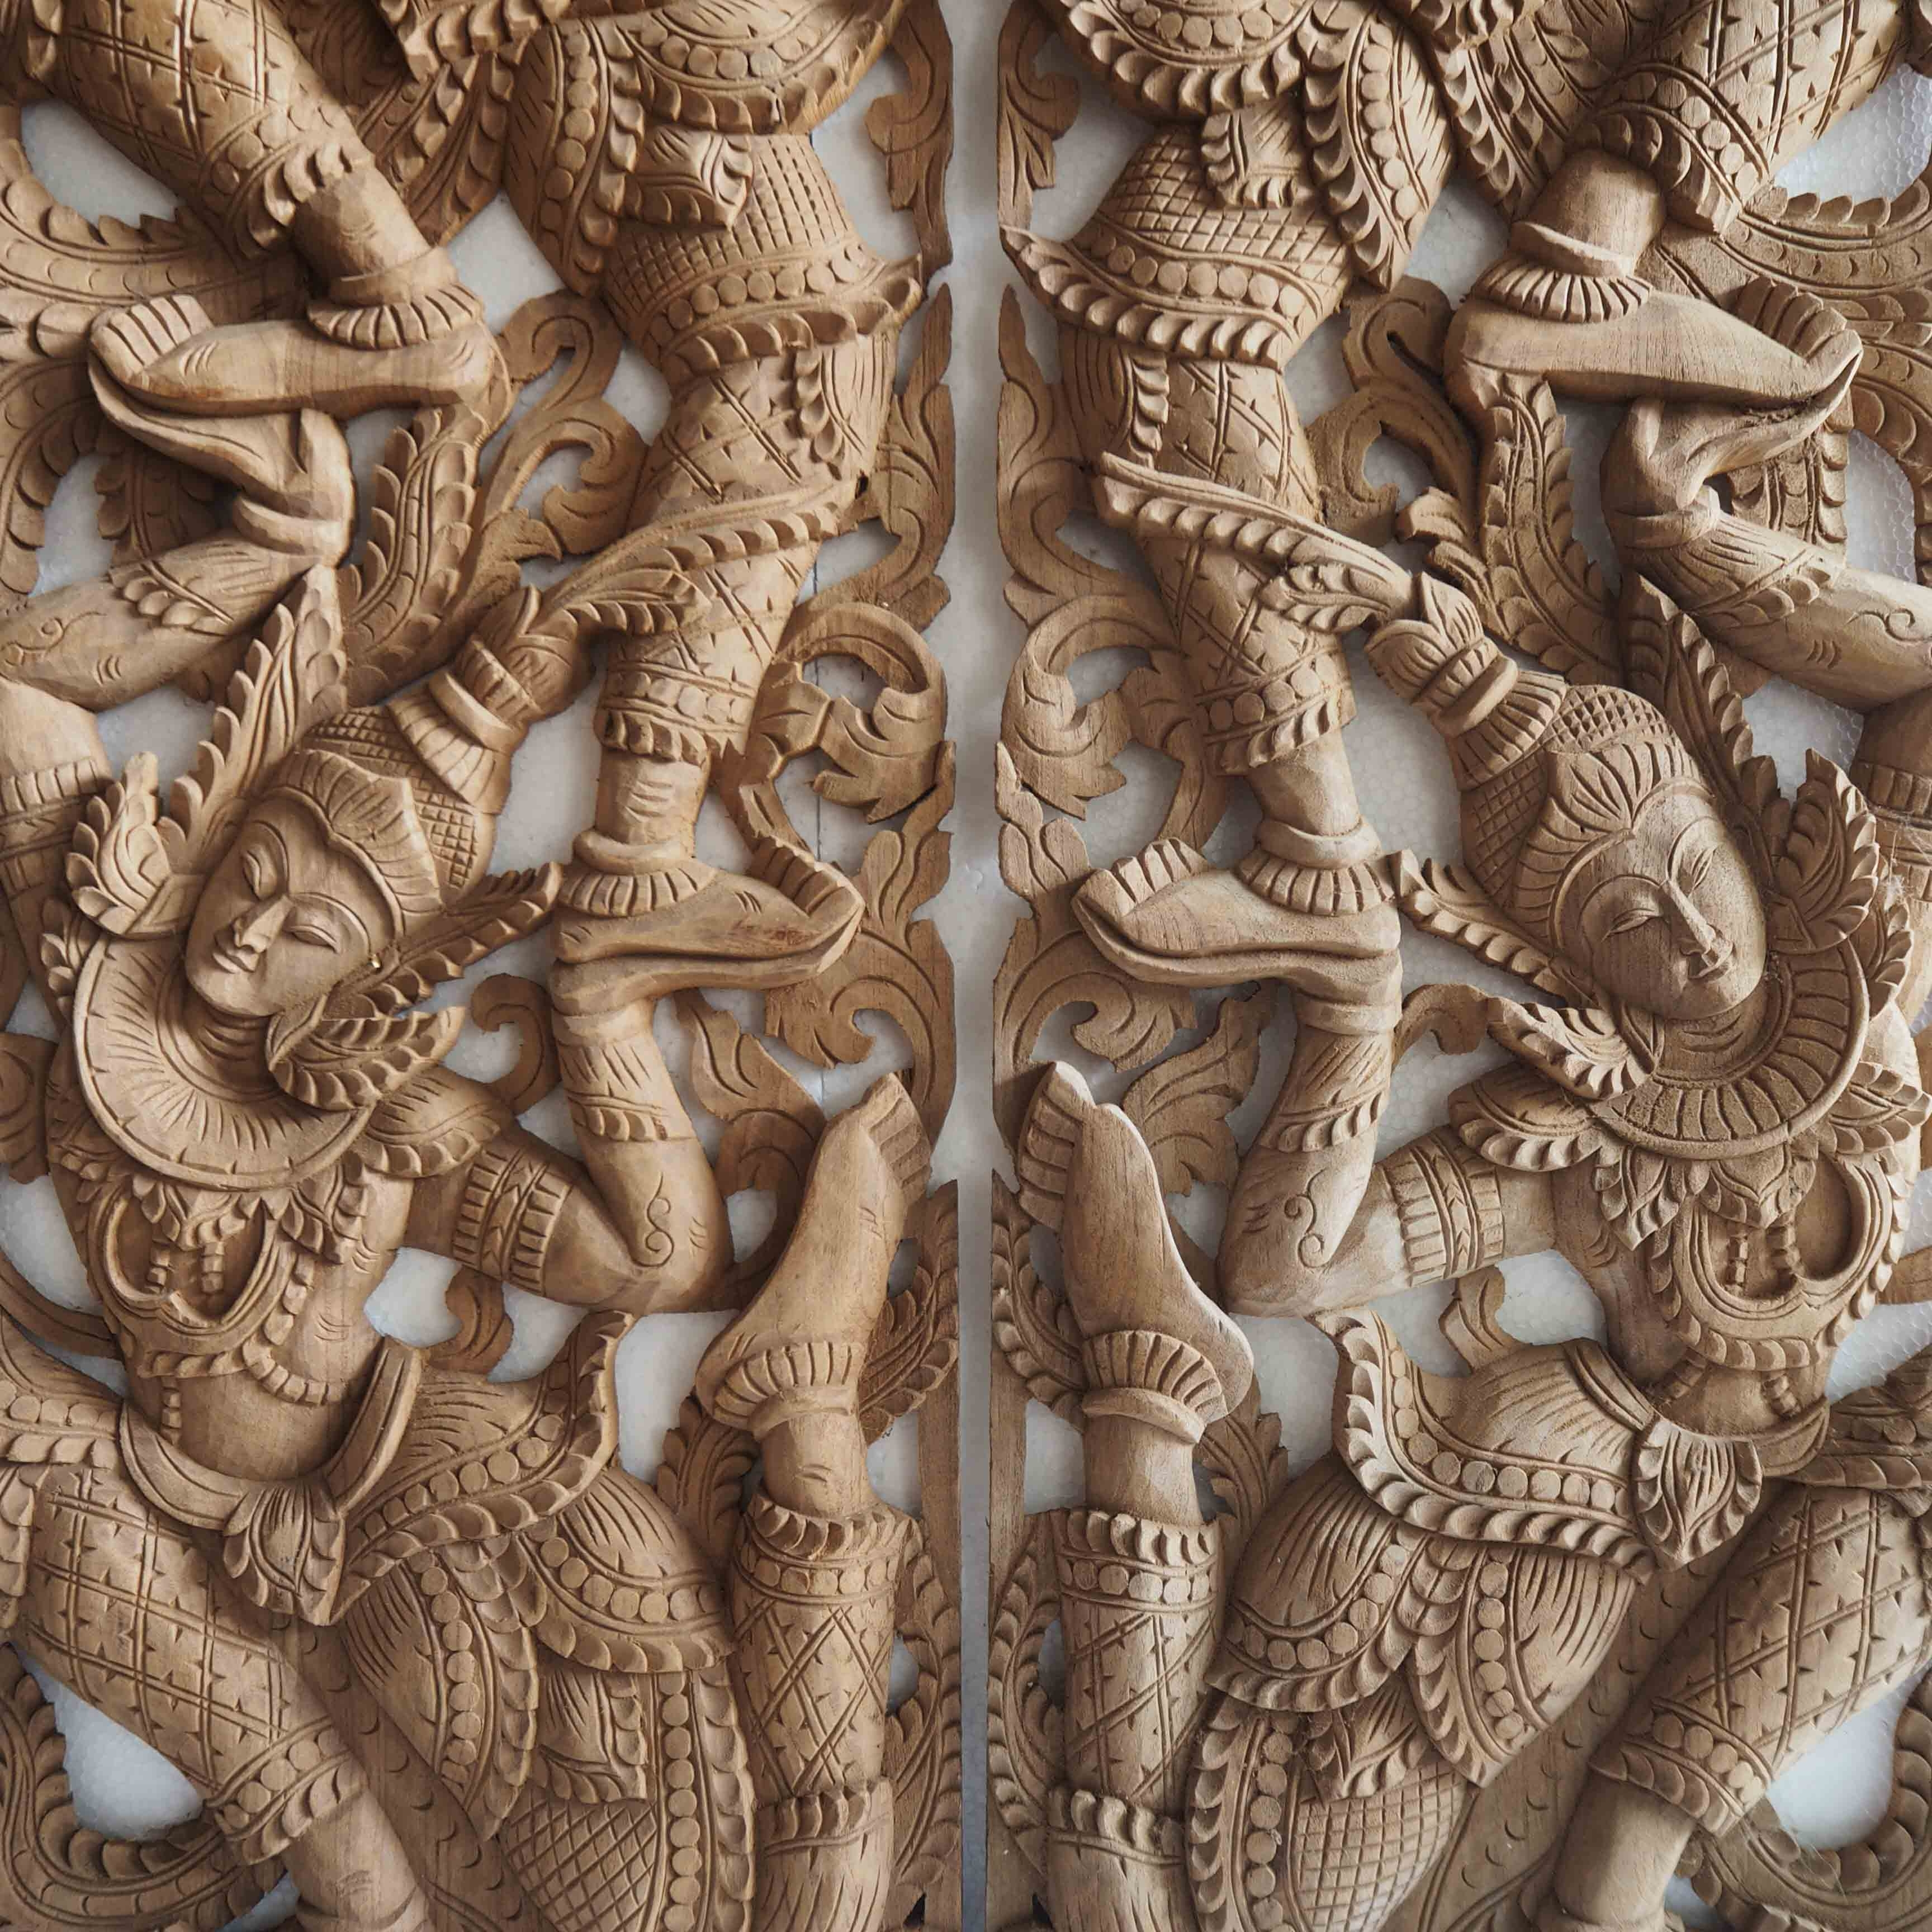 Popular Pair Of Wooden Wall Art Panel From Thailand – Siam Sawadee In Wood Carved Wall Art Panels (View 7 of 15)